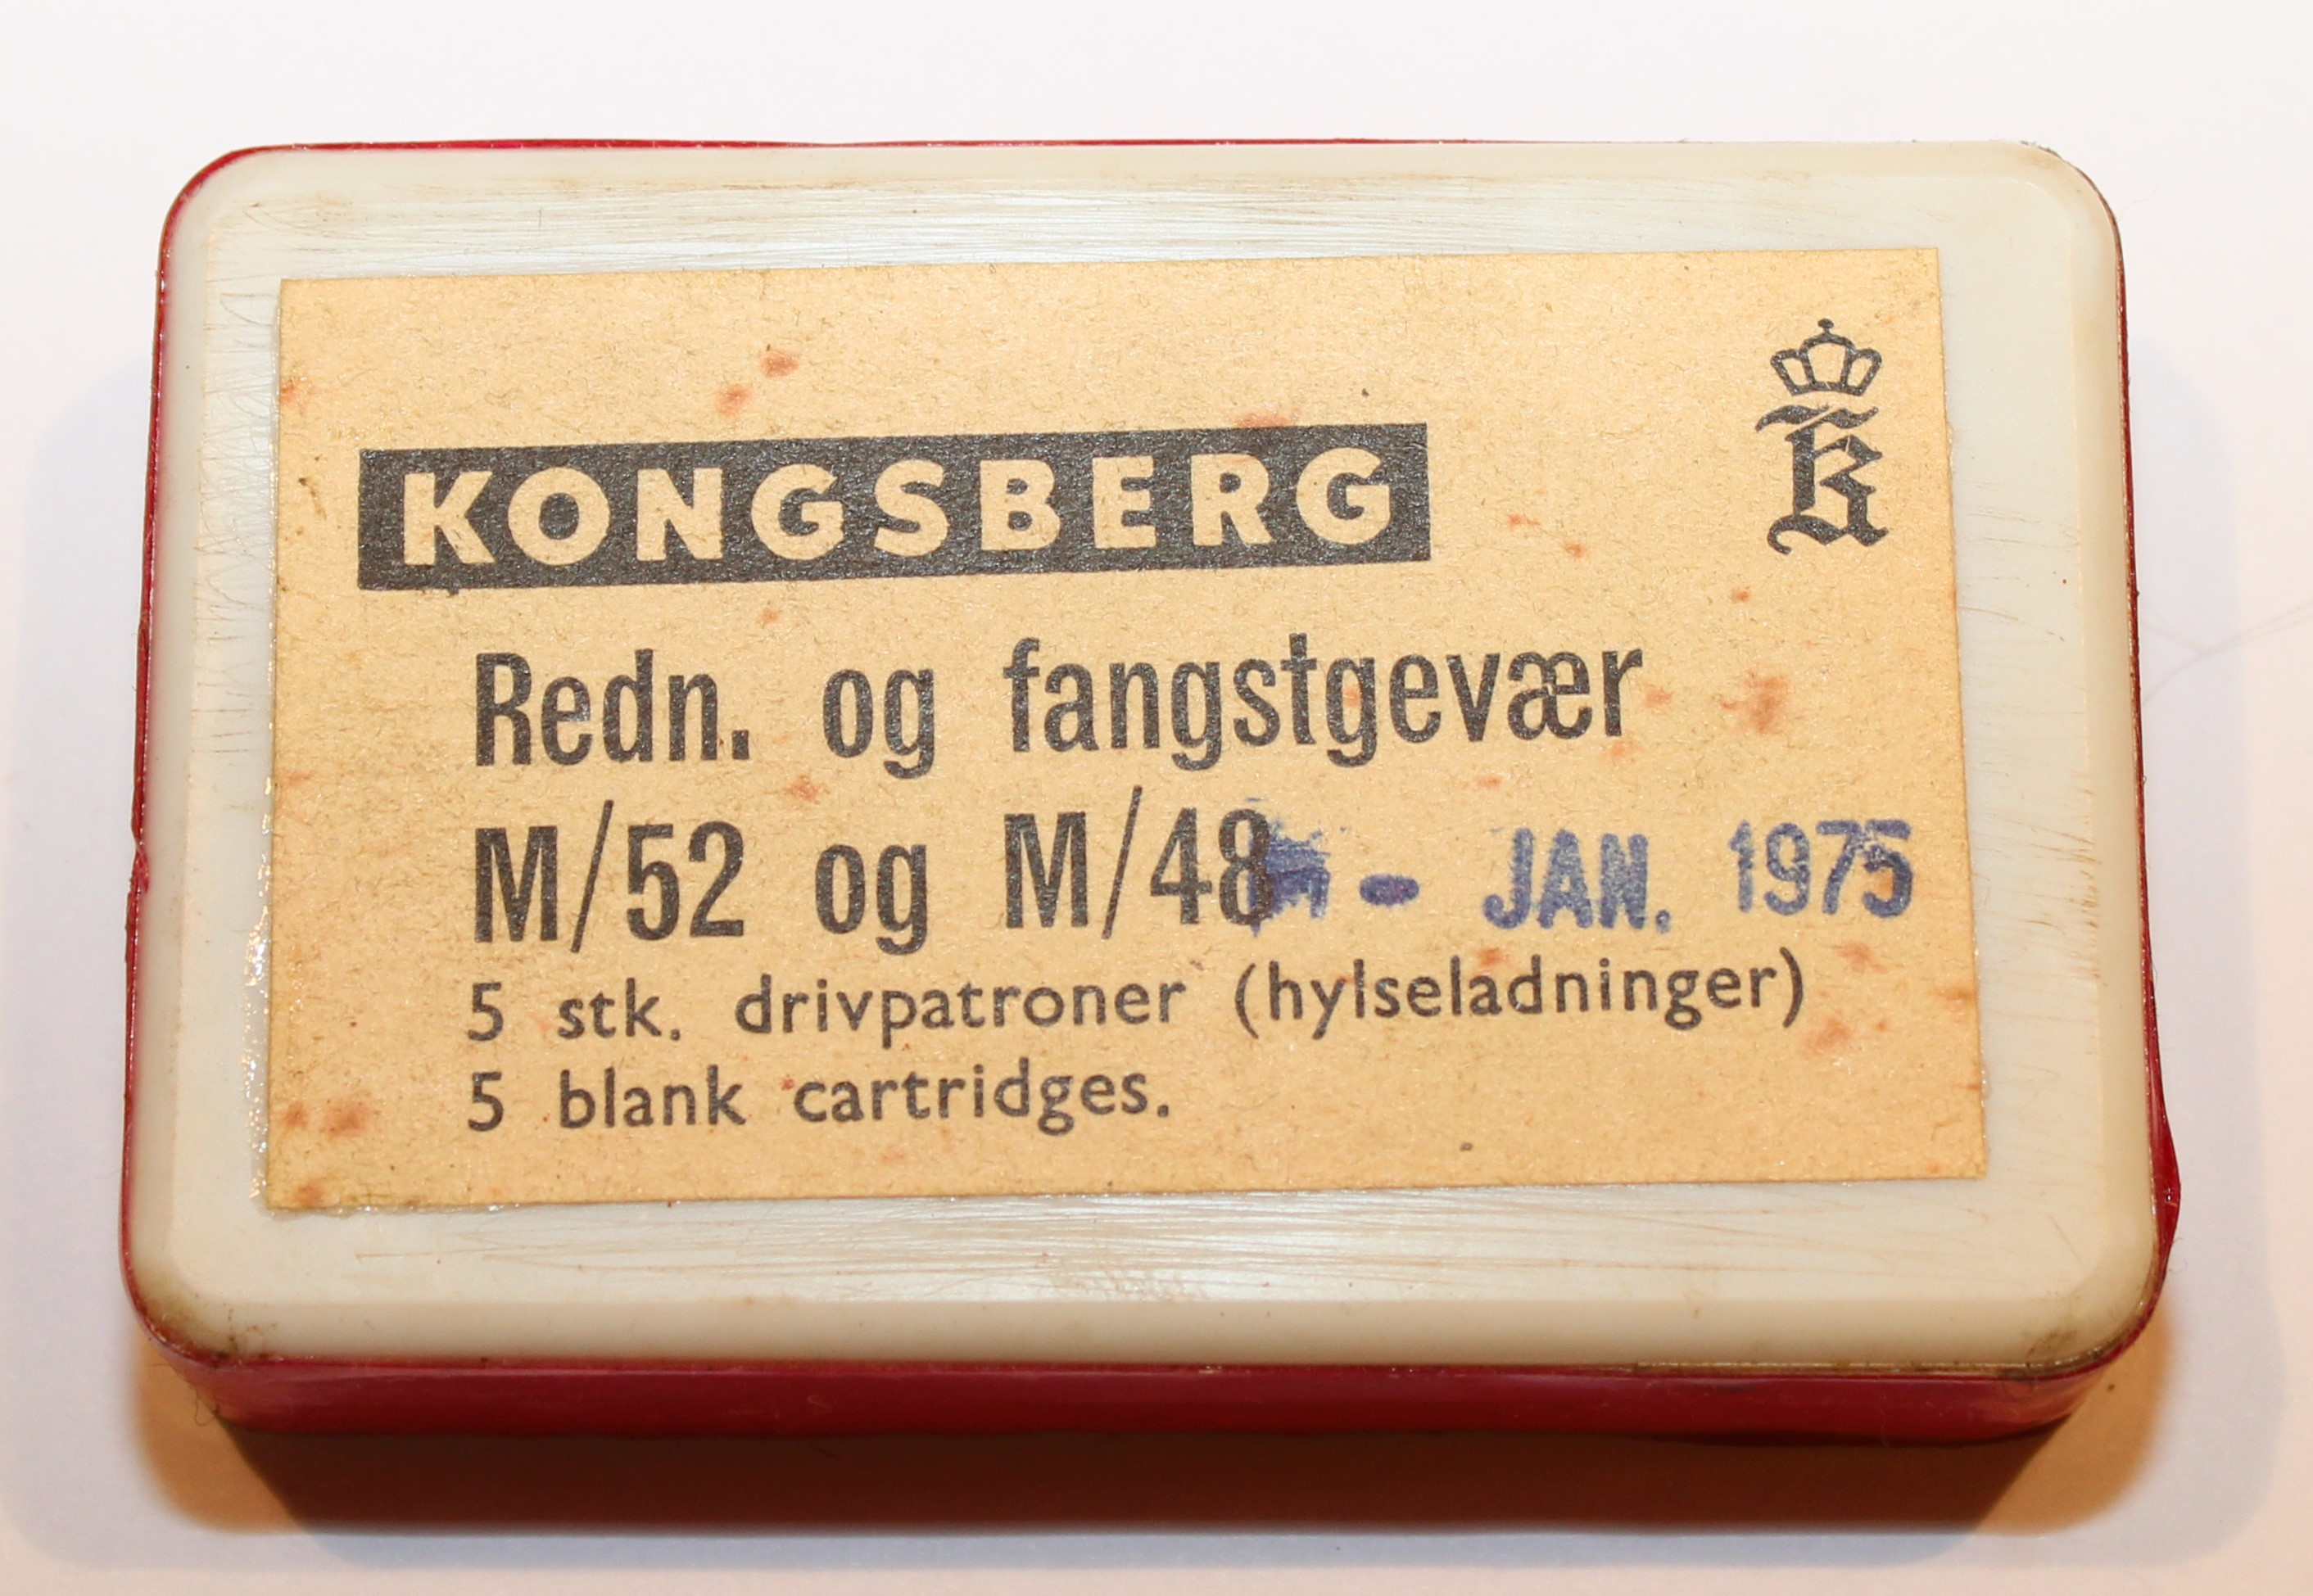 ./ammo/fangstredning/esker/Eske-12mm-Drivpatron-5skudd-JAN-1975-rod-tape-1.JPG